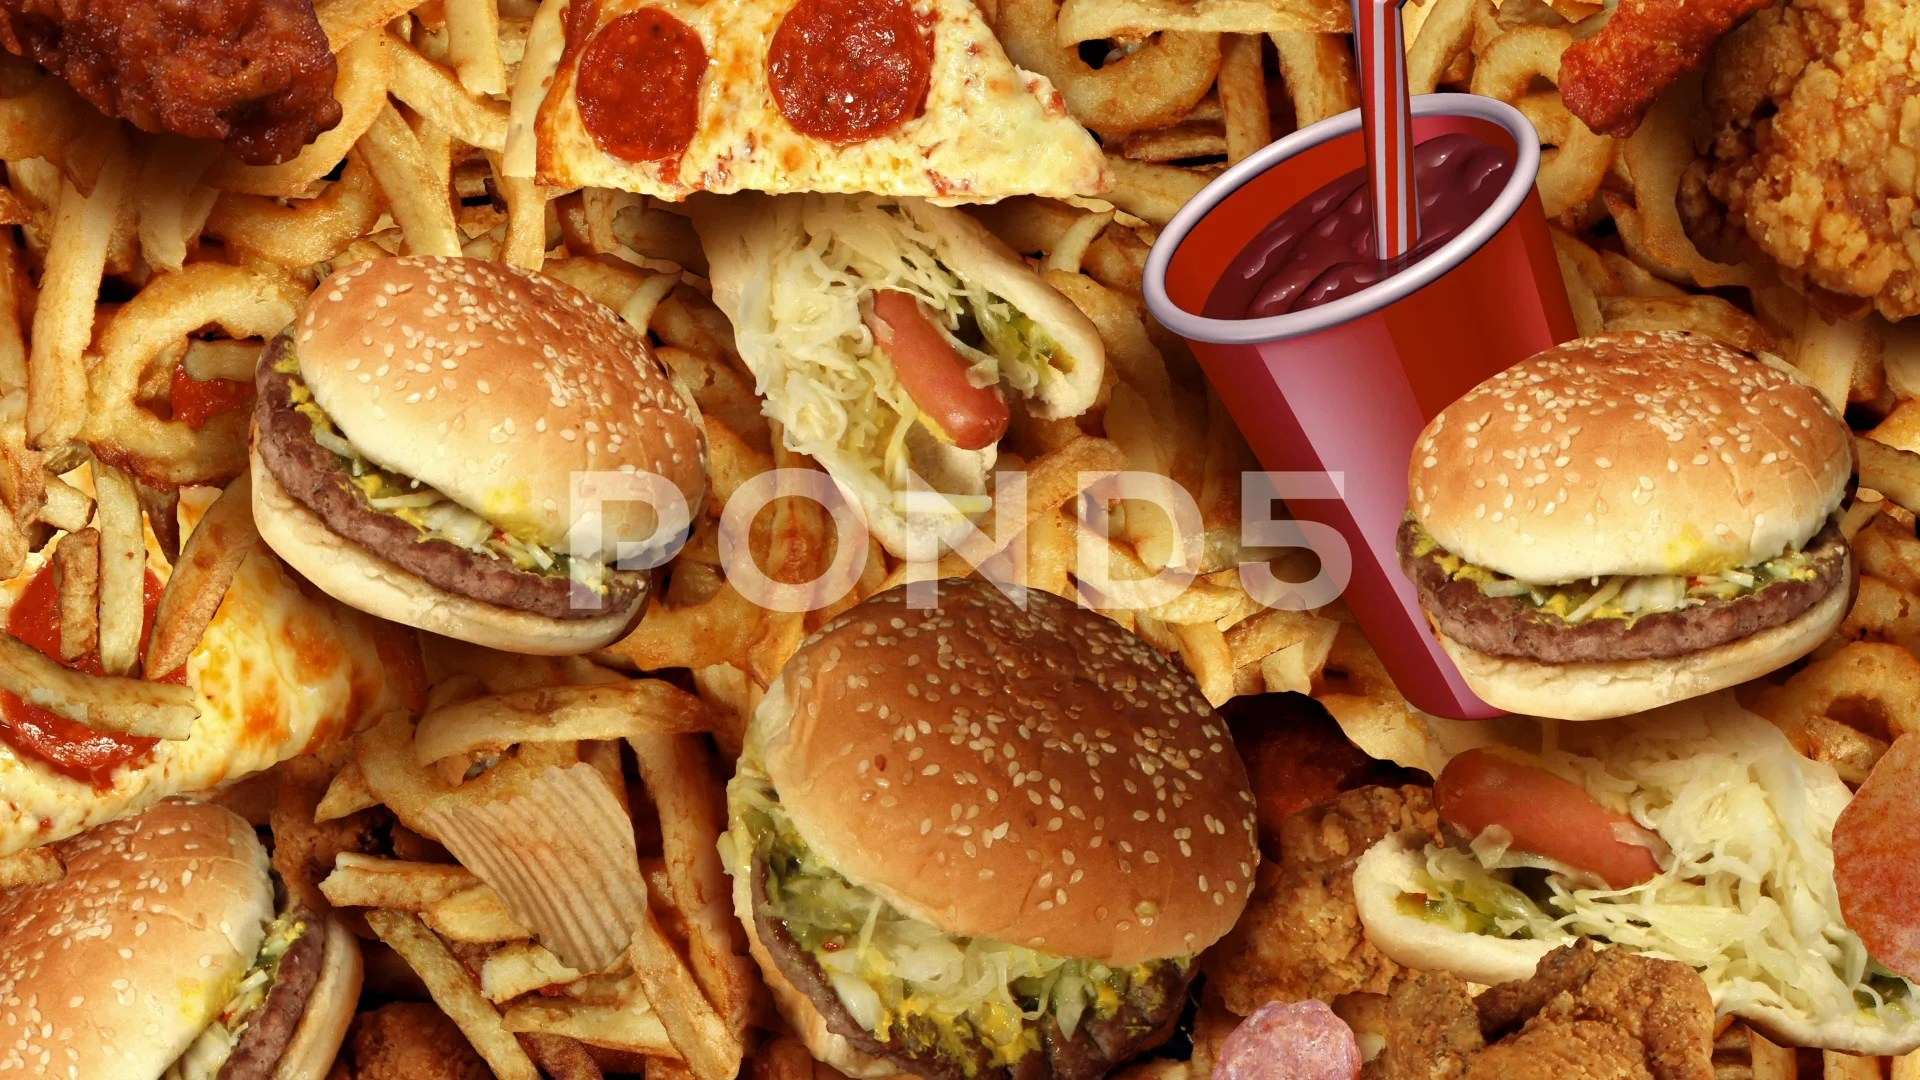 unhealthy food images